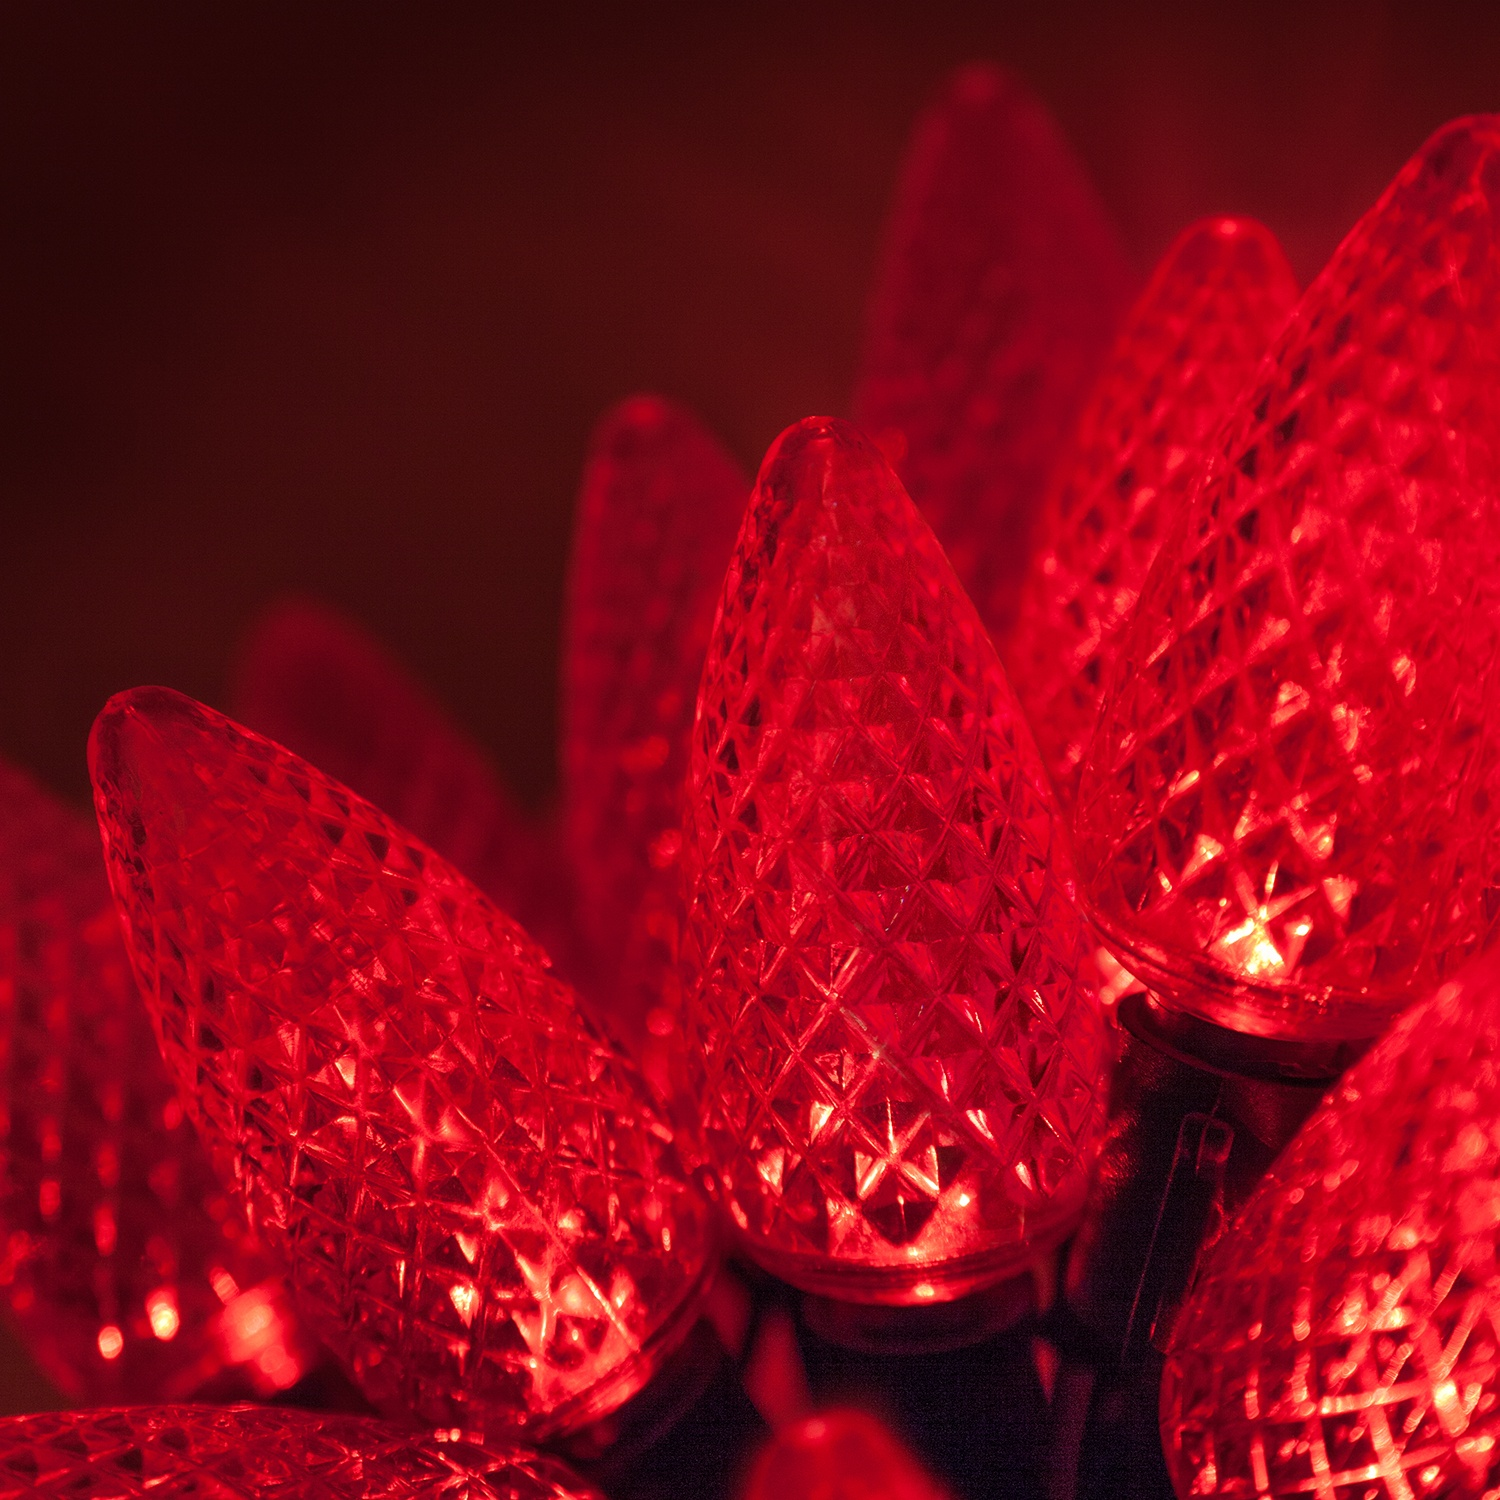 LED Christmas Lights - 25 C9 Red LED Christmas Lights, 8\